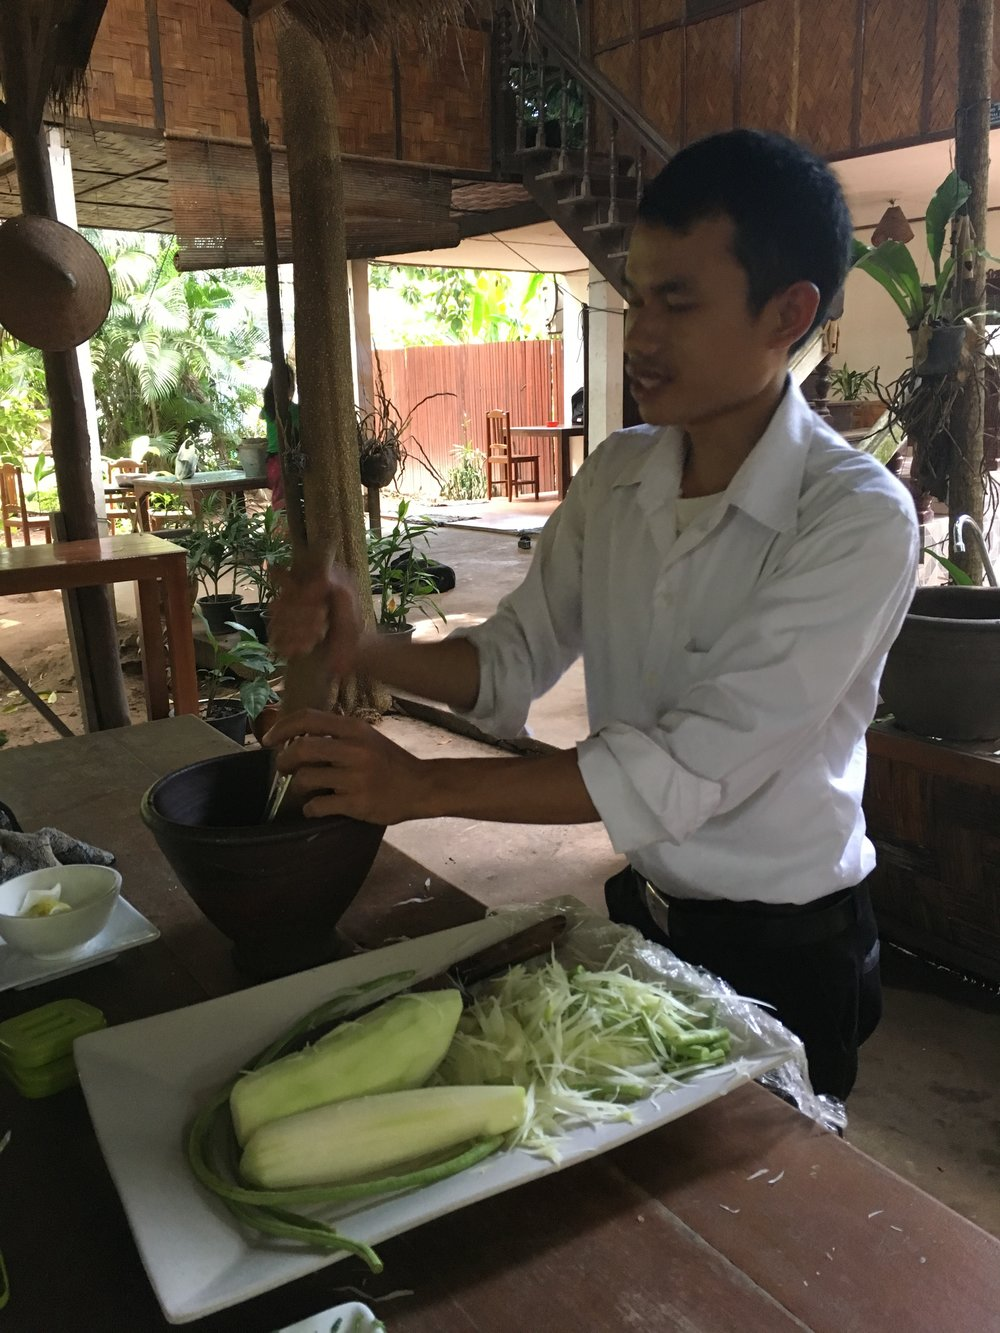 Young, green papayas for salad and the famed mortar and pestle.